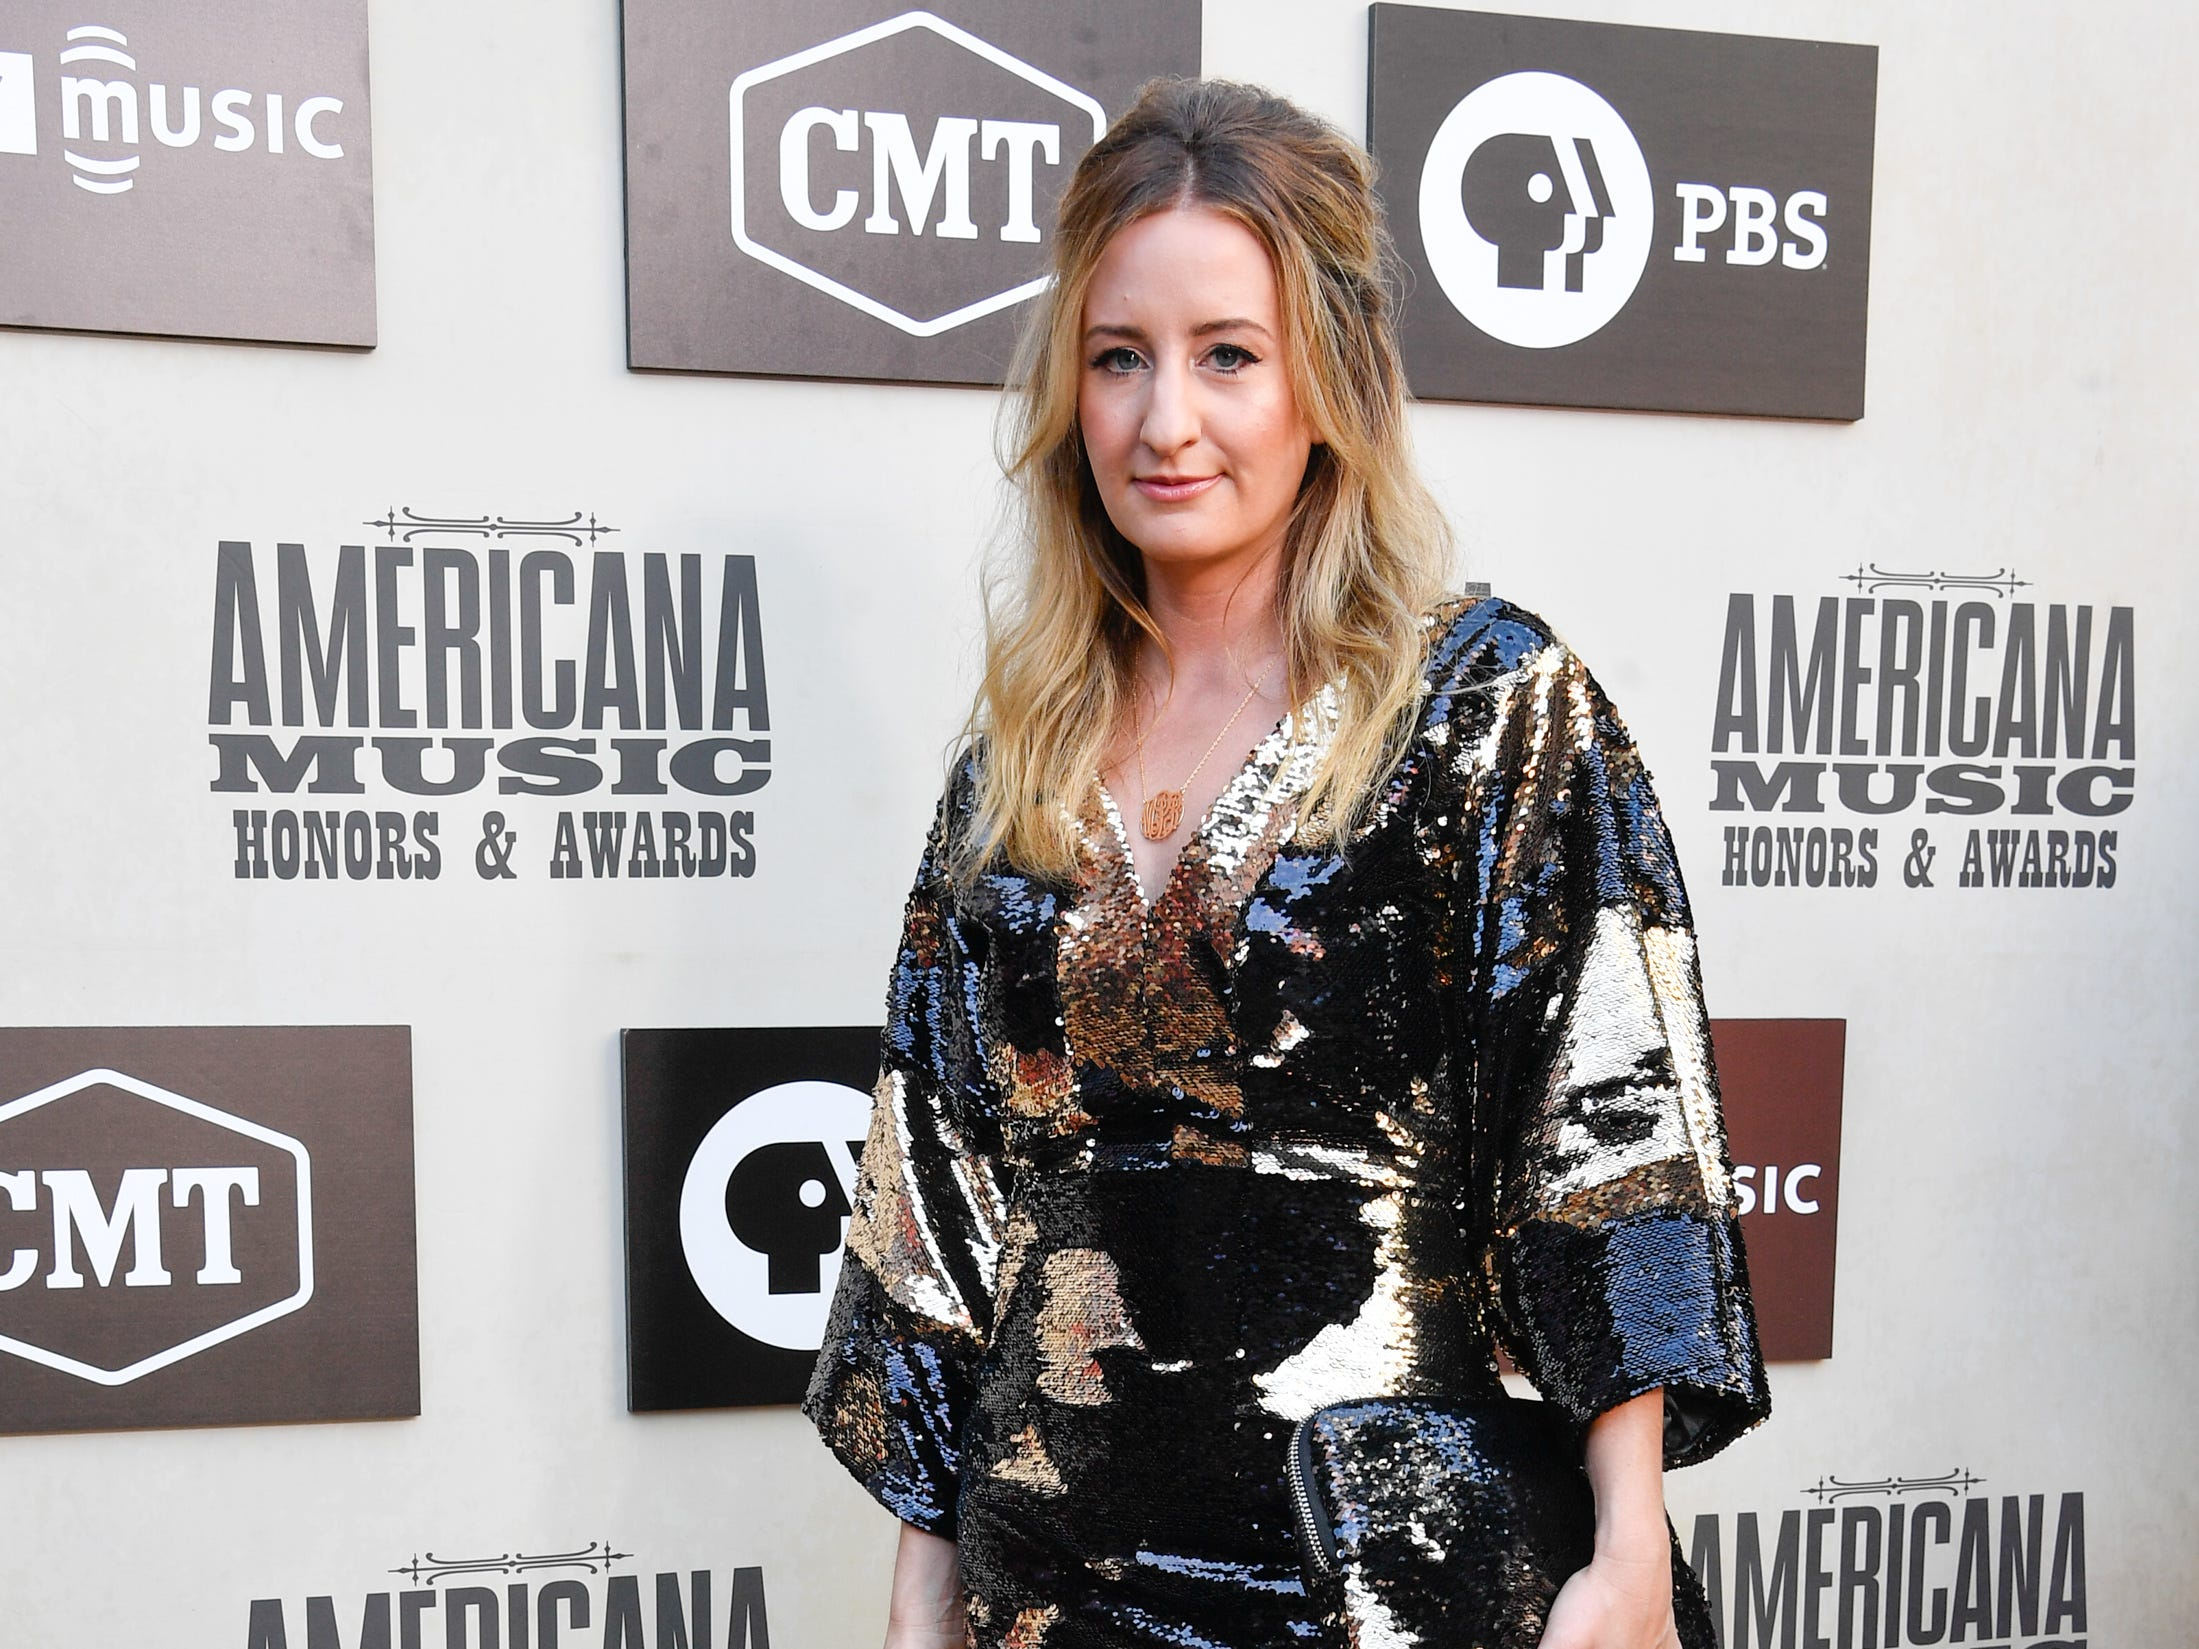 Margo Price poses on the red carpet before the 2018 Americana Honors and Awards show at the Ryman Auditorium in Nashville, Tenn., Wednesday, Sept. 12, 2018.